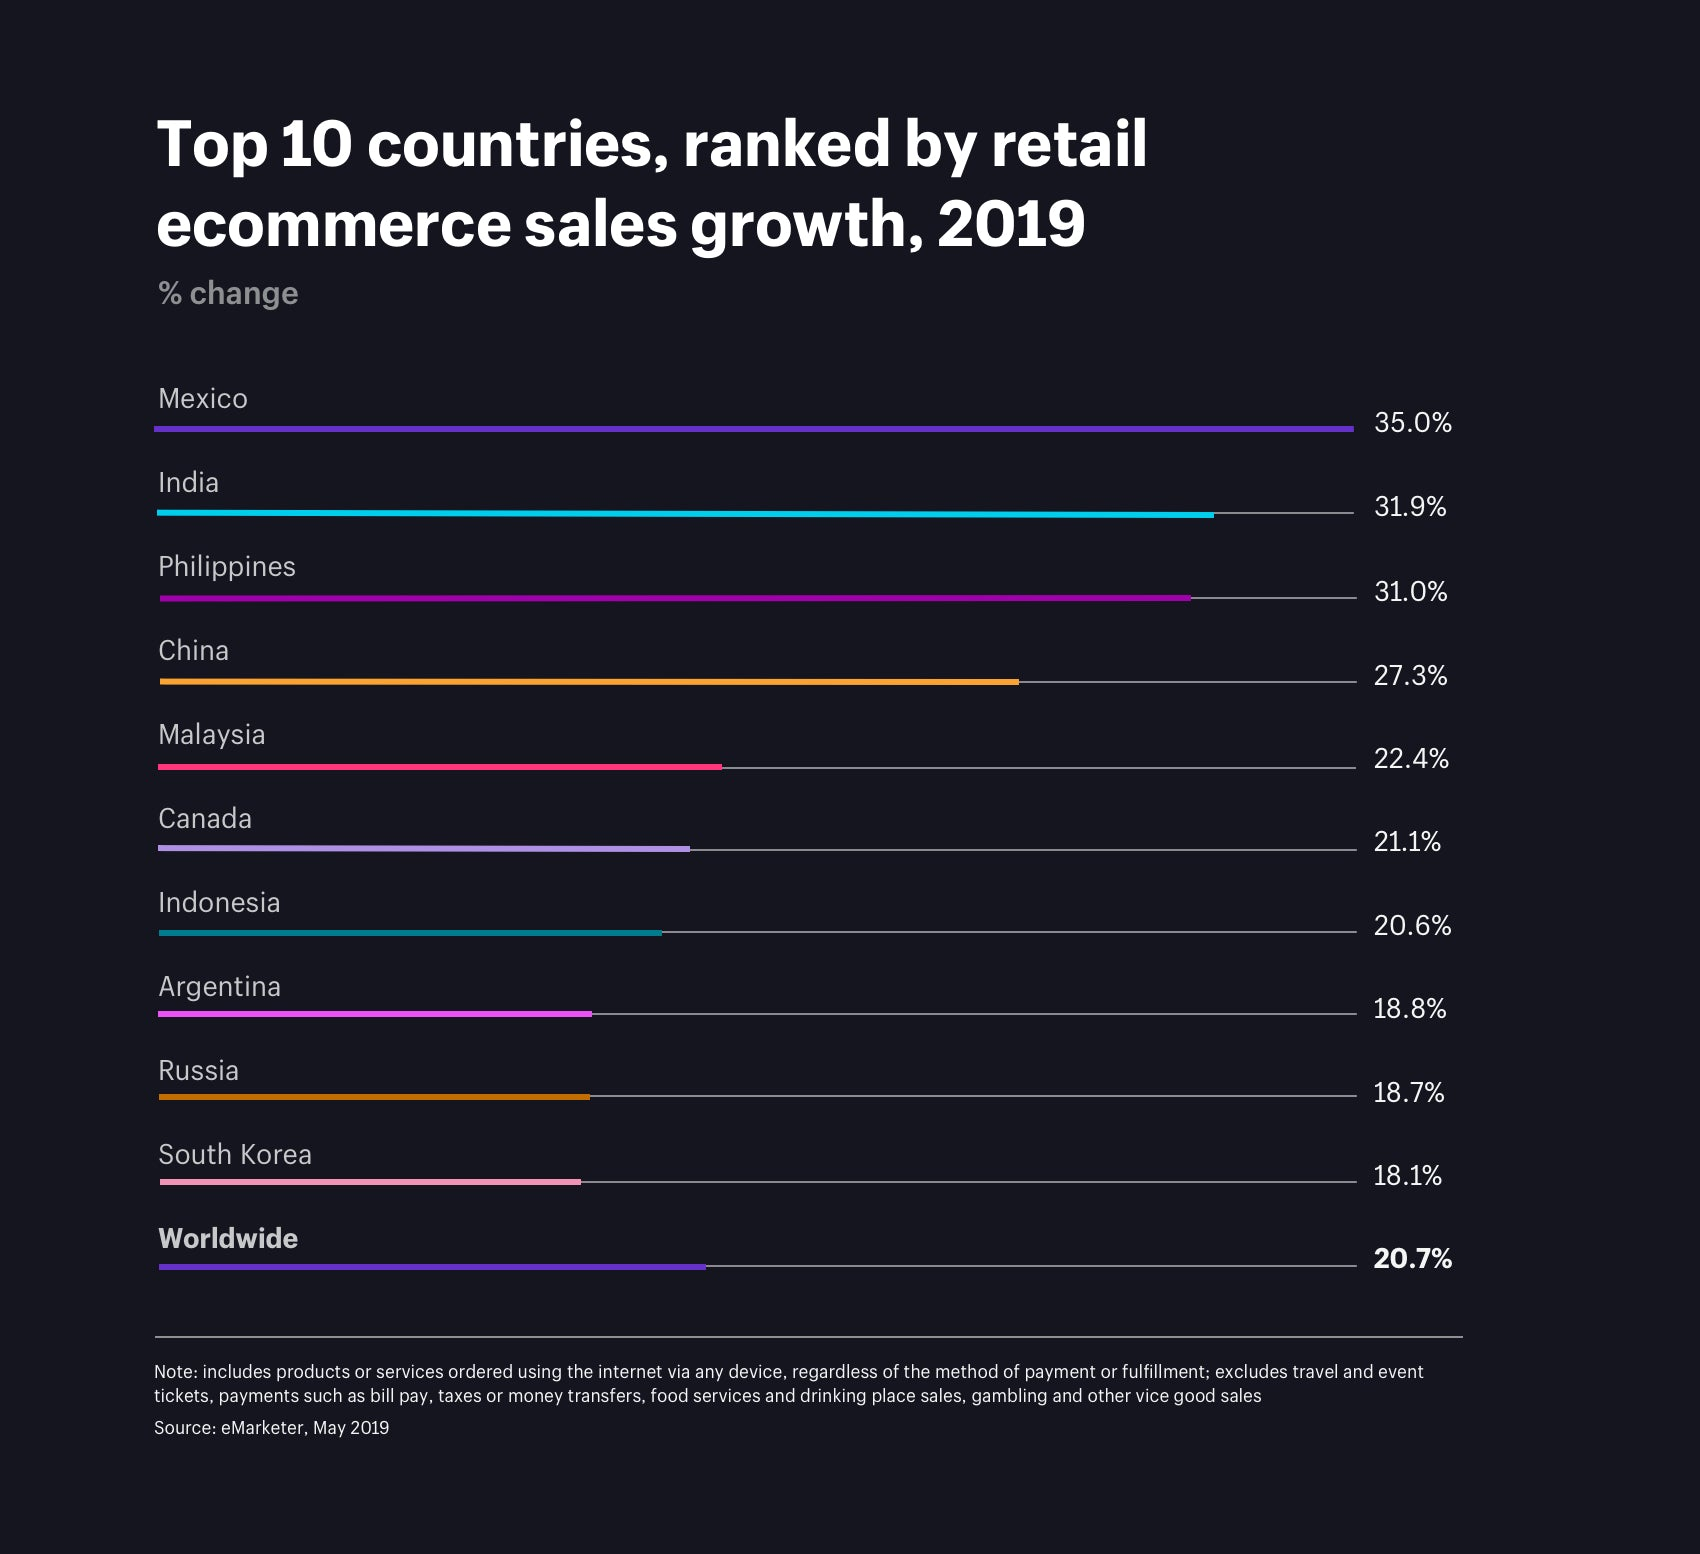 Top 10 countries, ranked by retail ecommerce sales growth